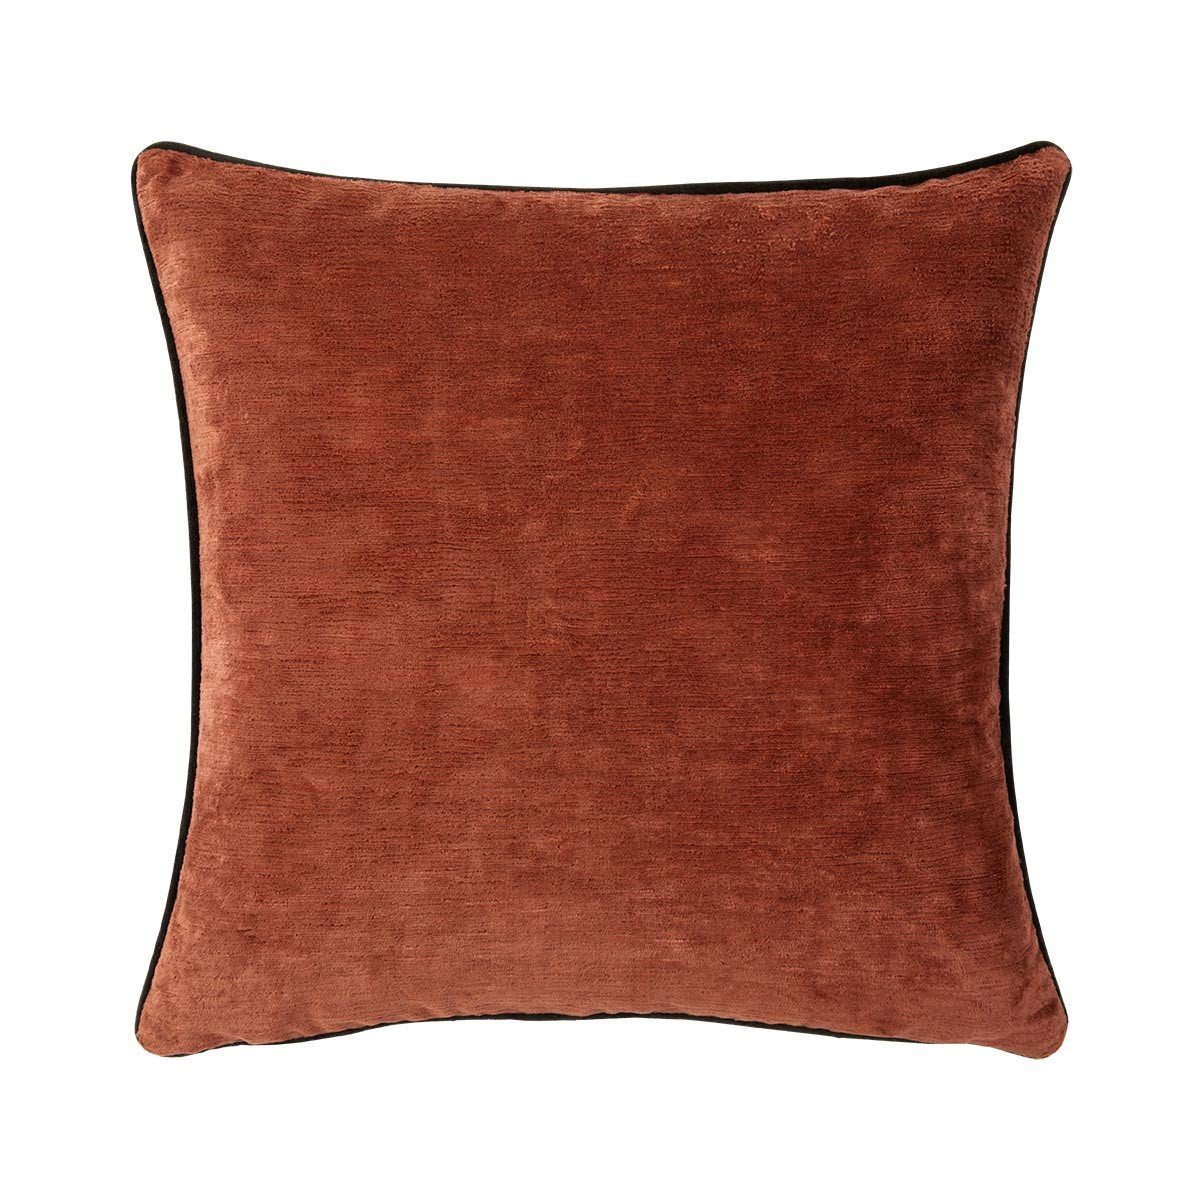 Boromee Ambre Decorative Pillow by Iosis